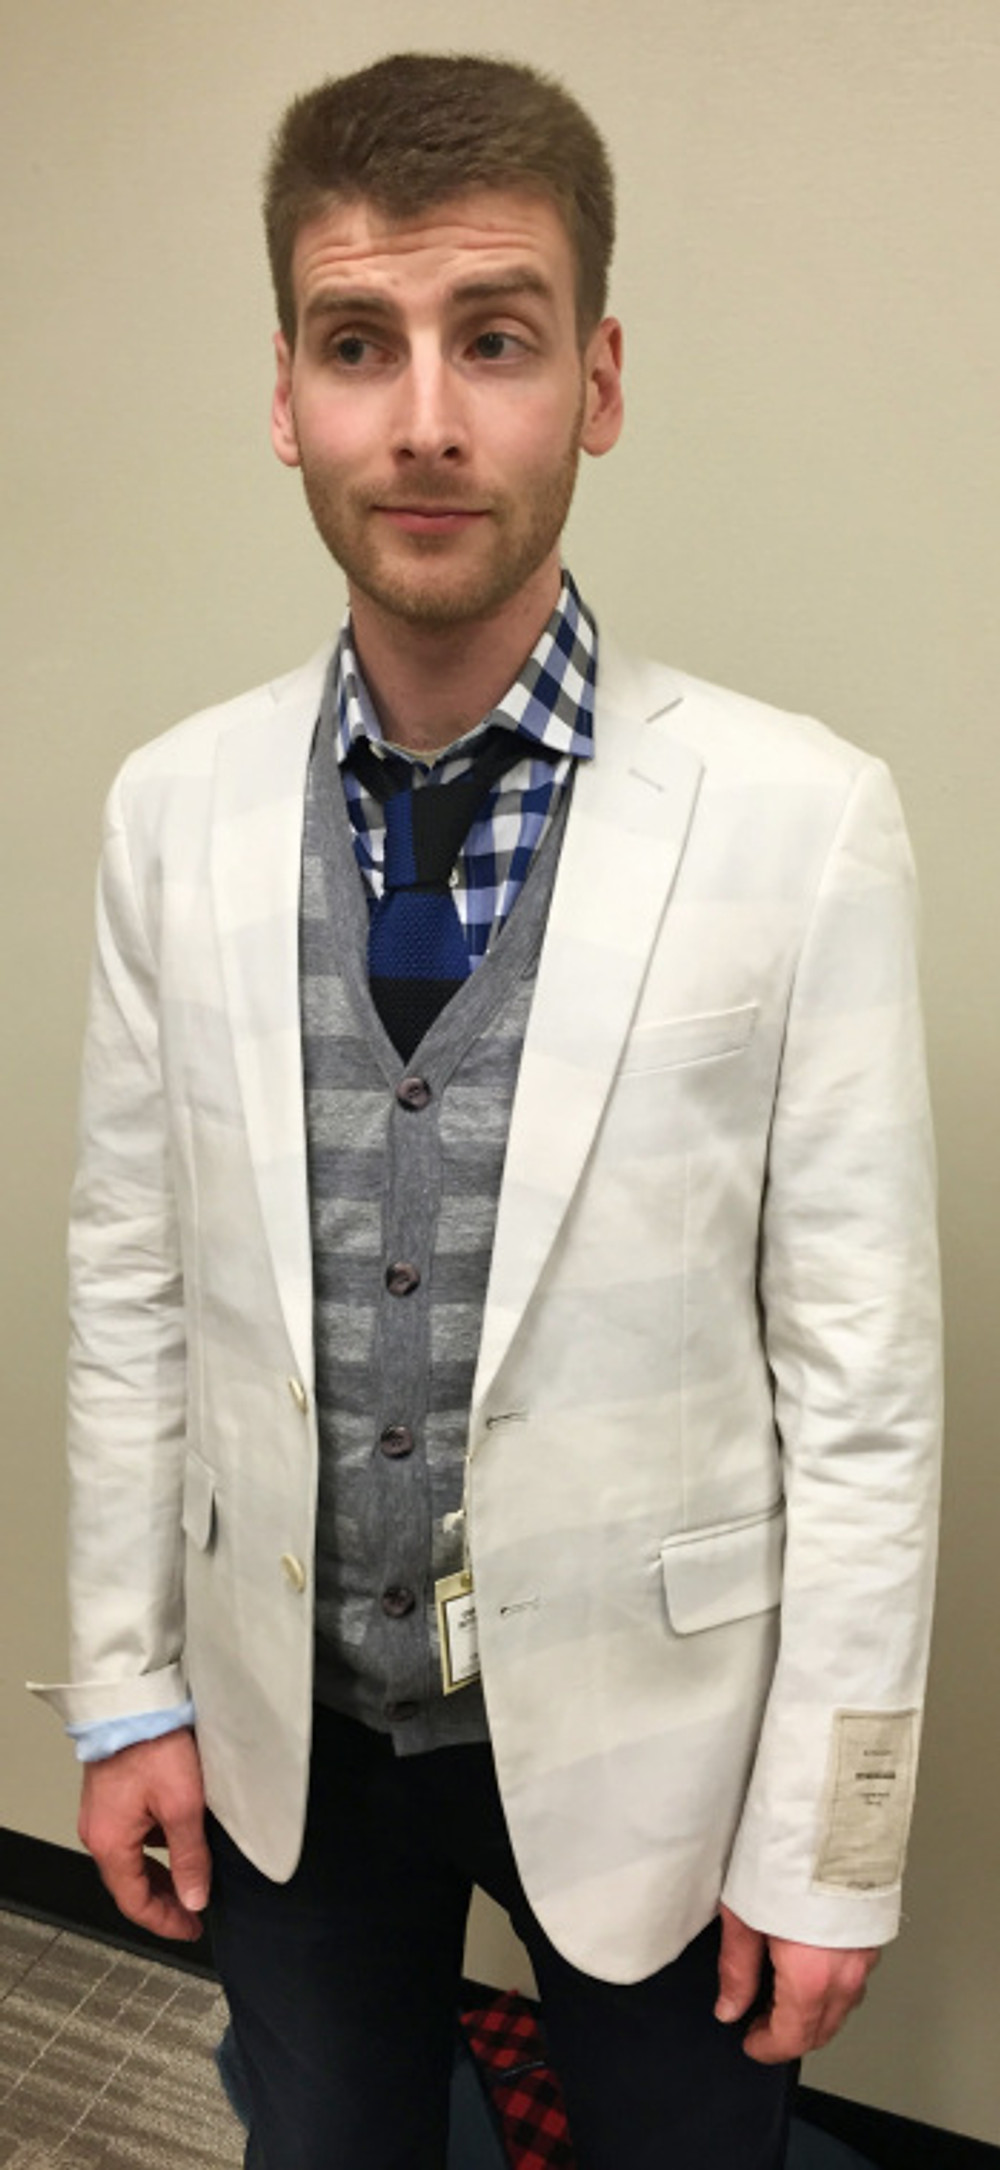 Paired with a gingham shirt, knit tie, and cardigan sweater, it's preppy with a side of grunge.